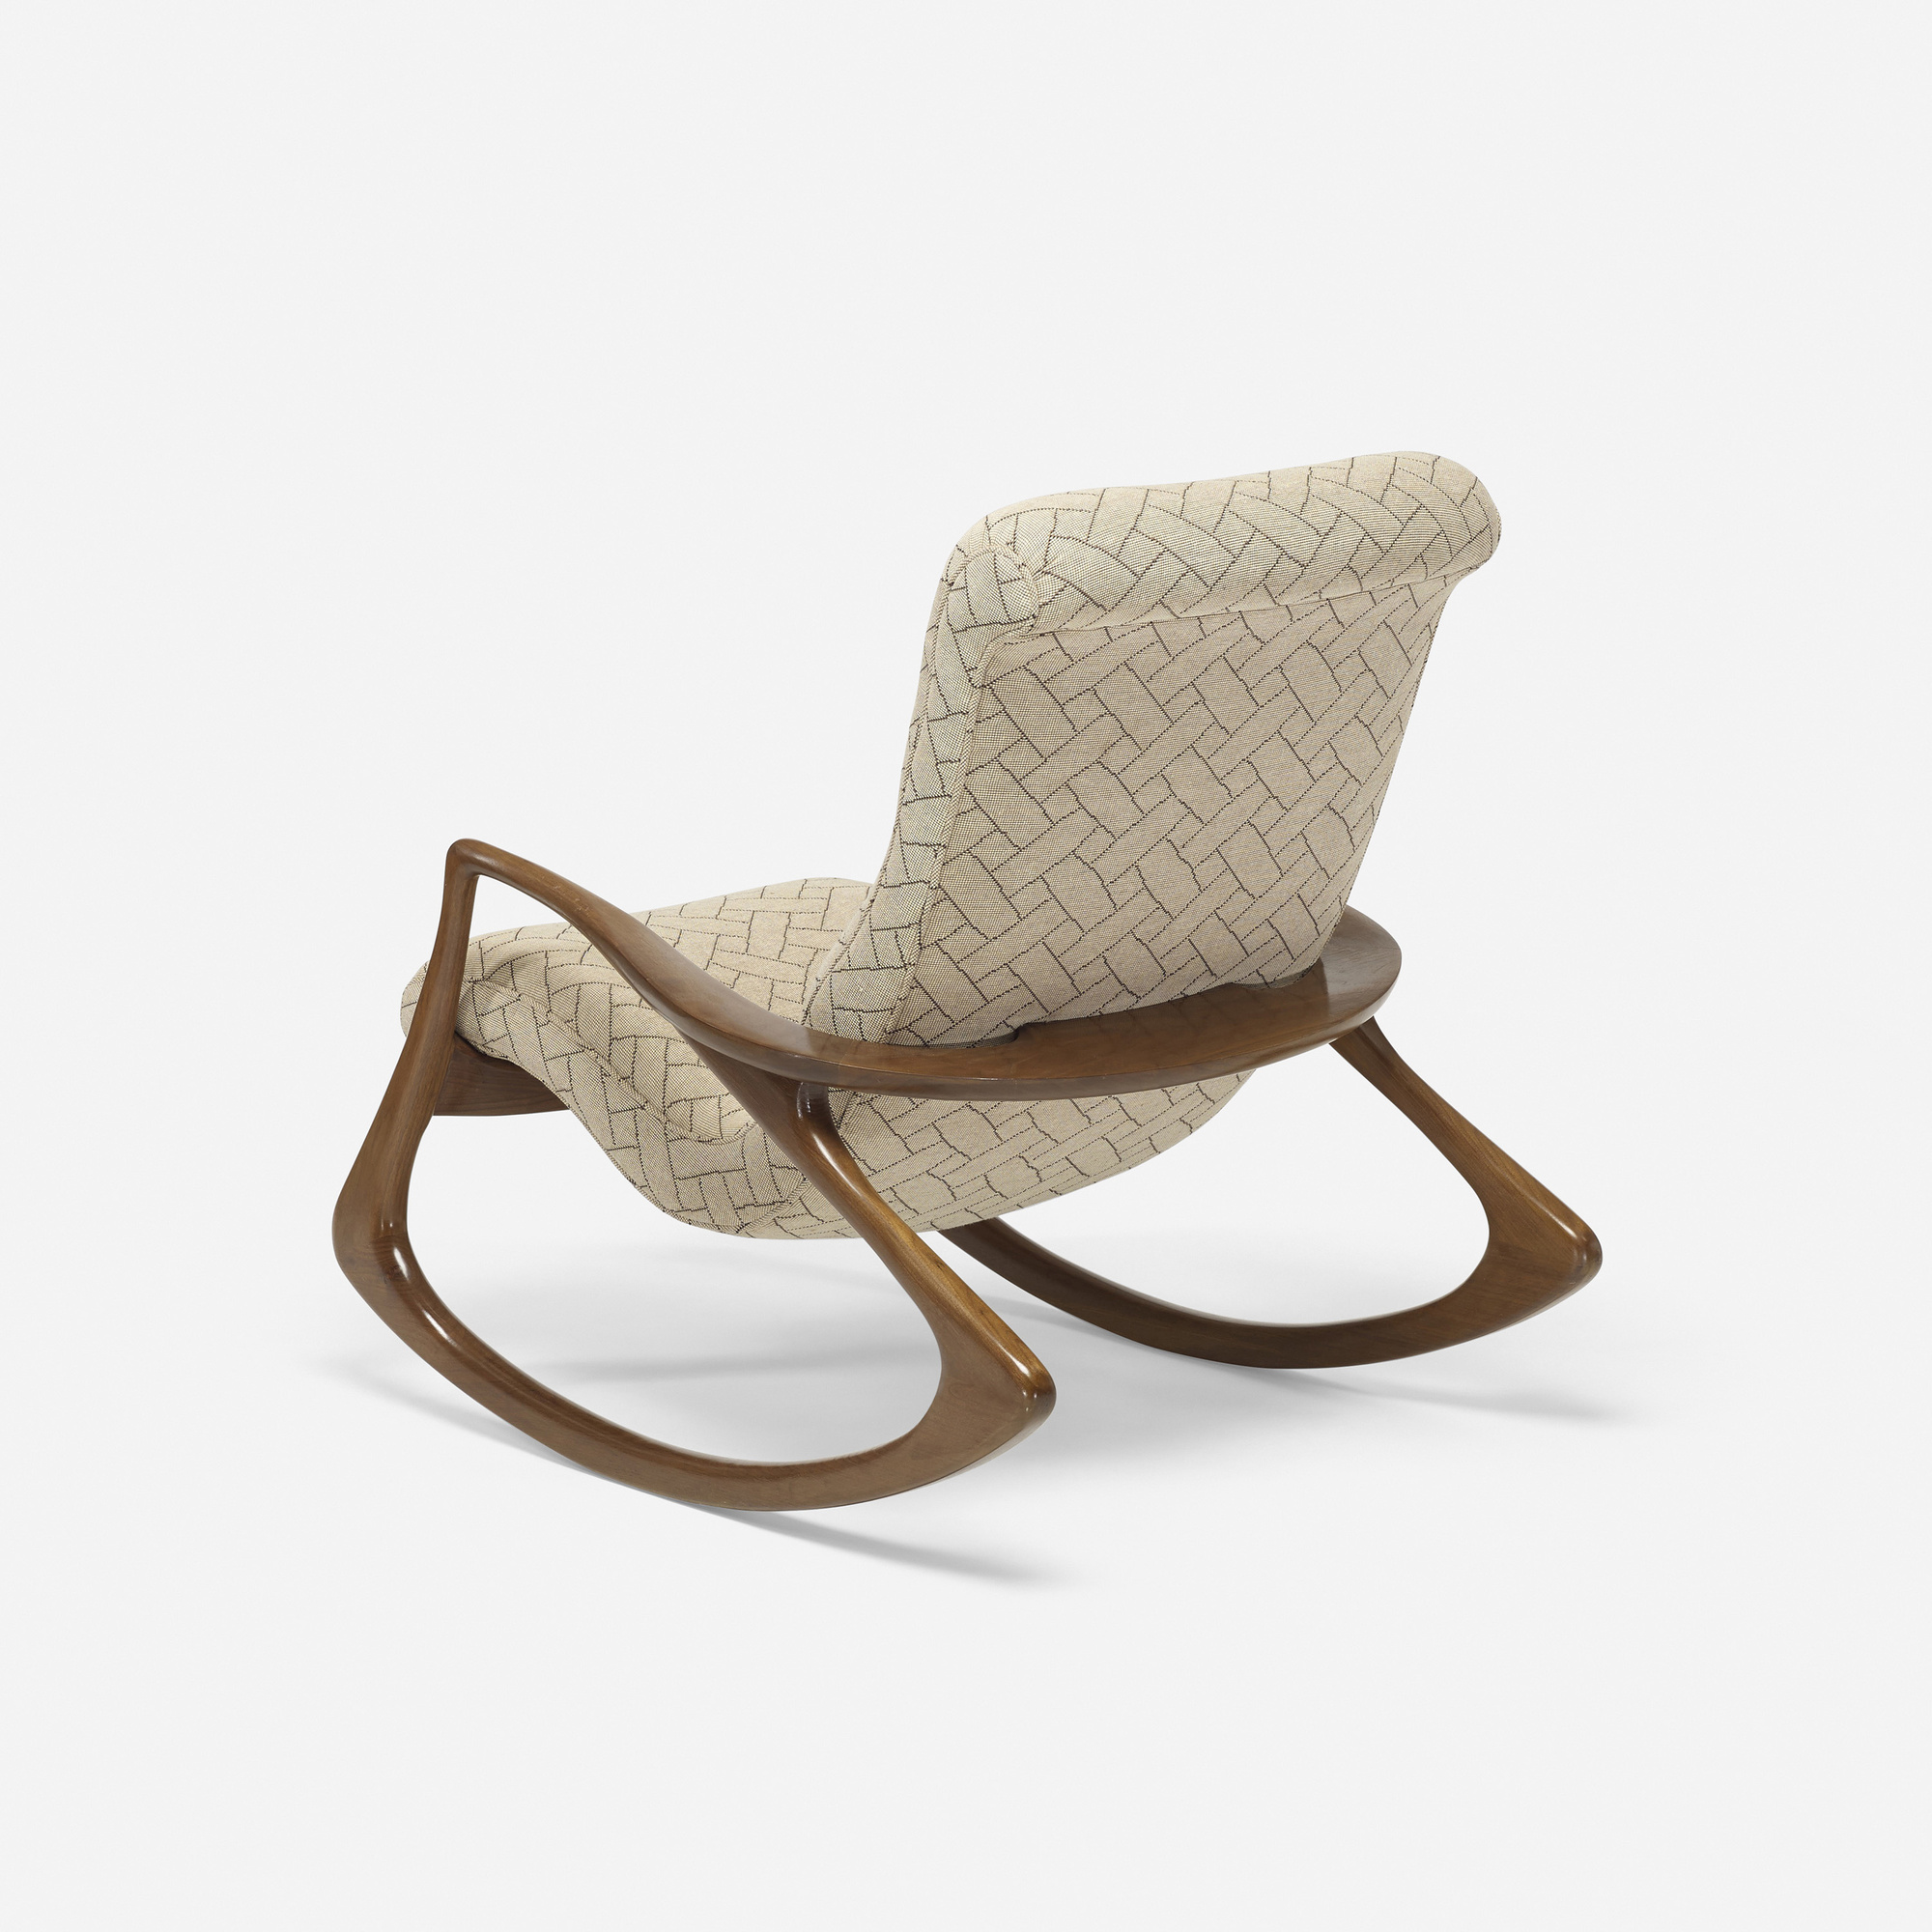 vladimir kagan rocking chair high chairs for tall tables 328 sculpted design 26 march 2015 2 of